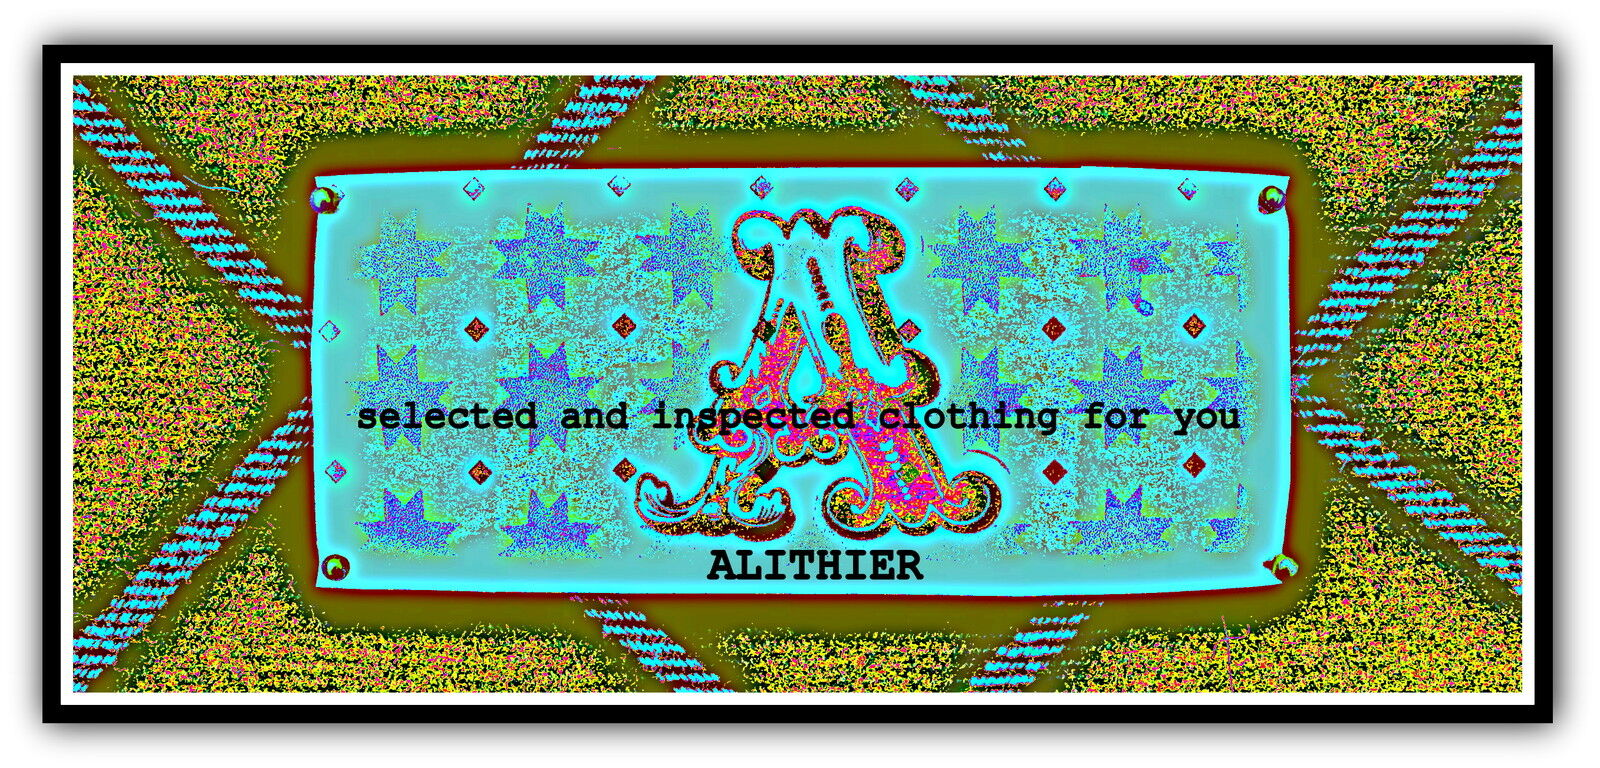 Alithier